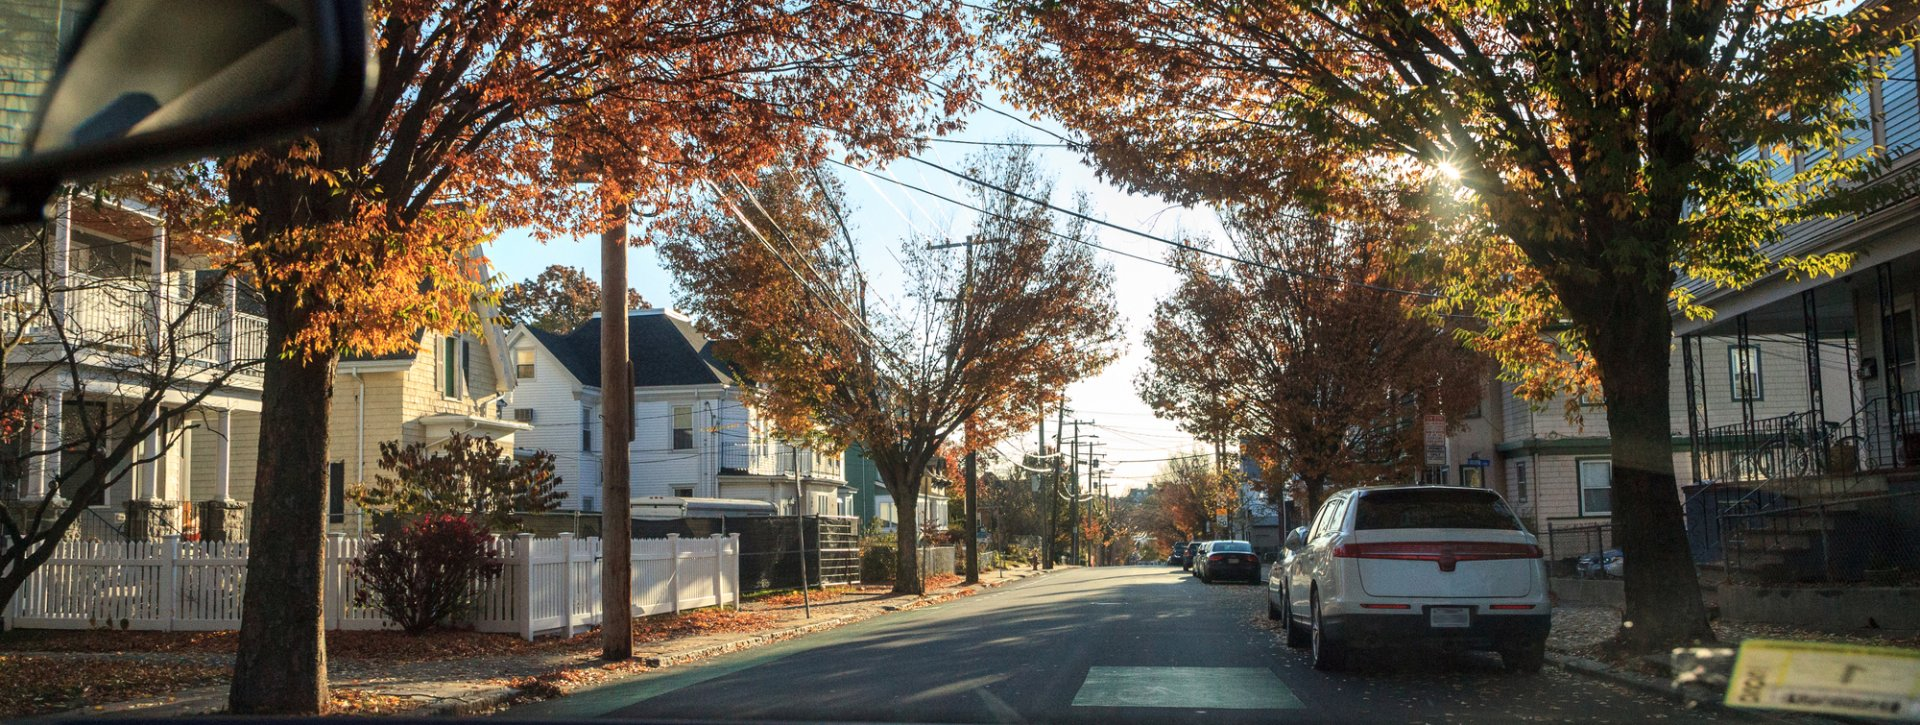 Buy Your Next Home in Somerville, MA